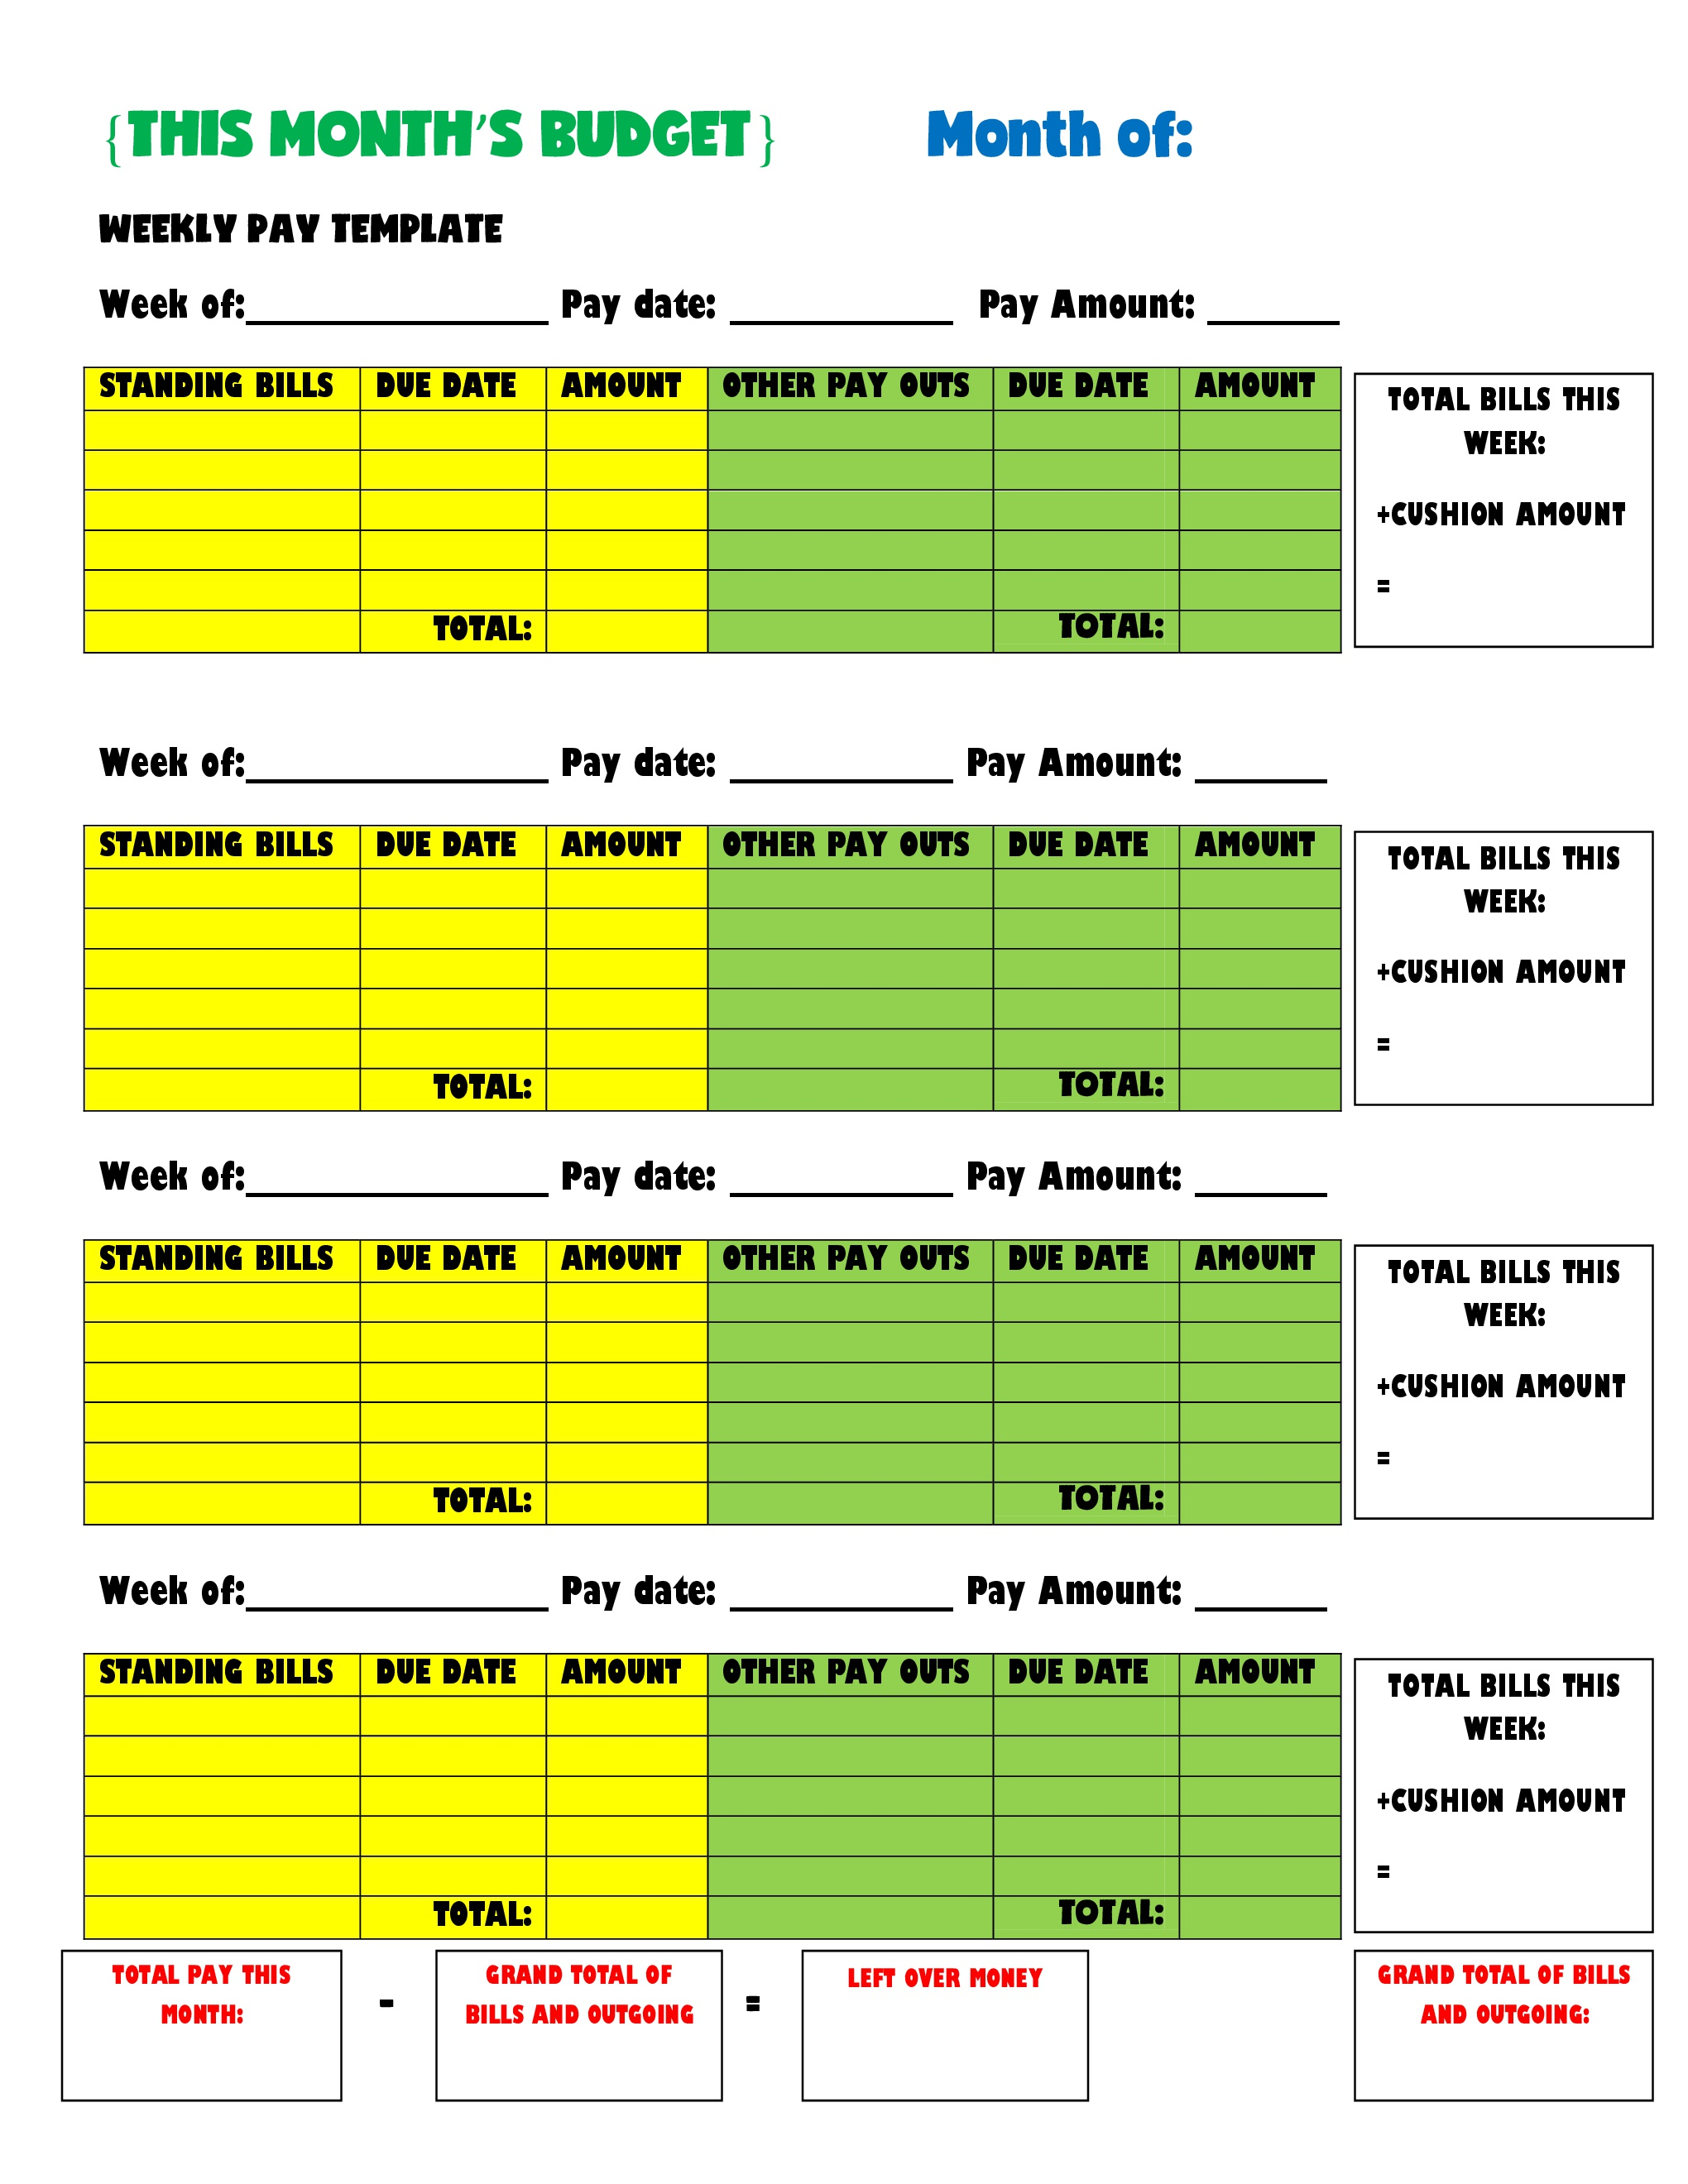 Weekly pay budget template jpeg